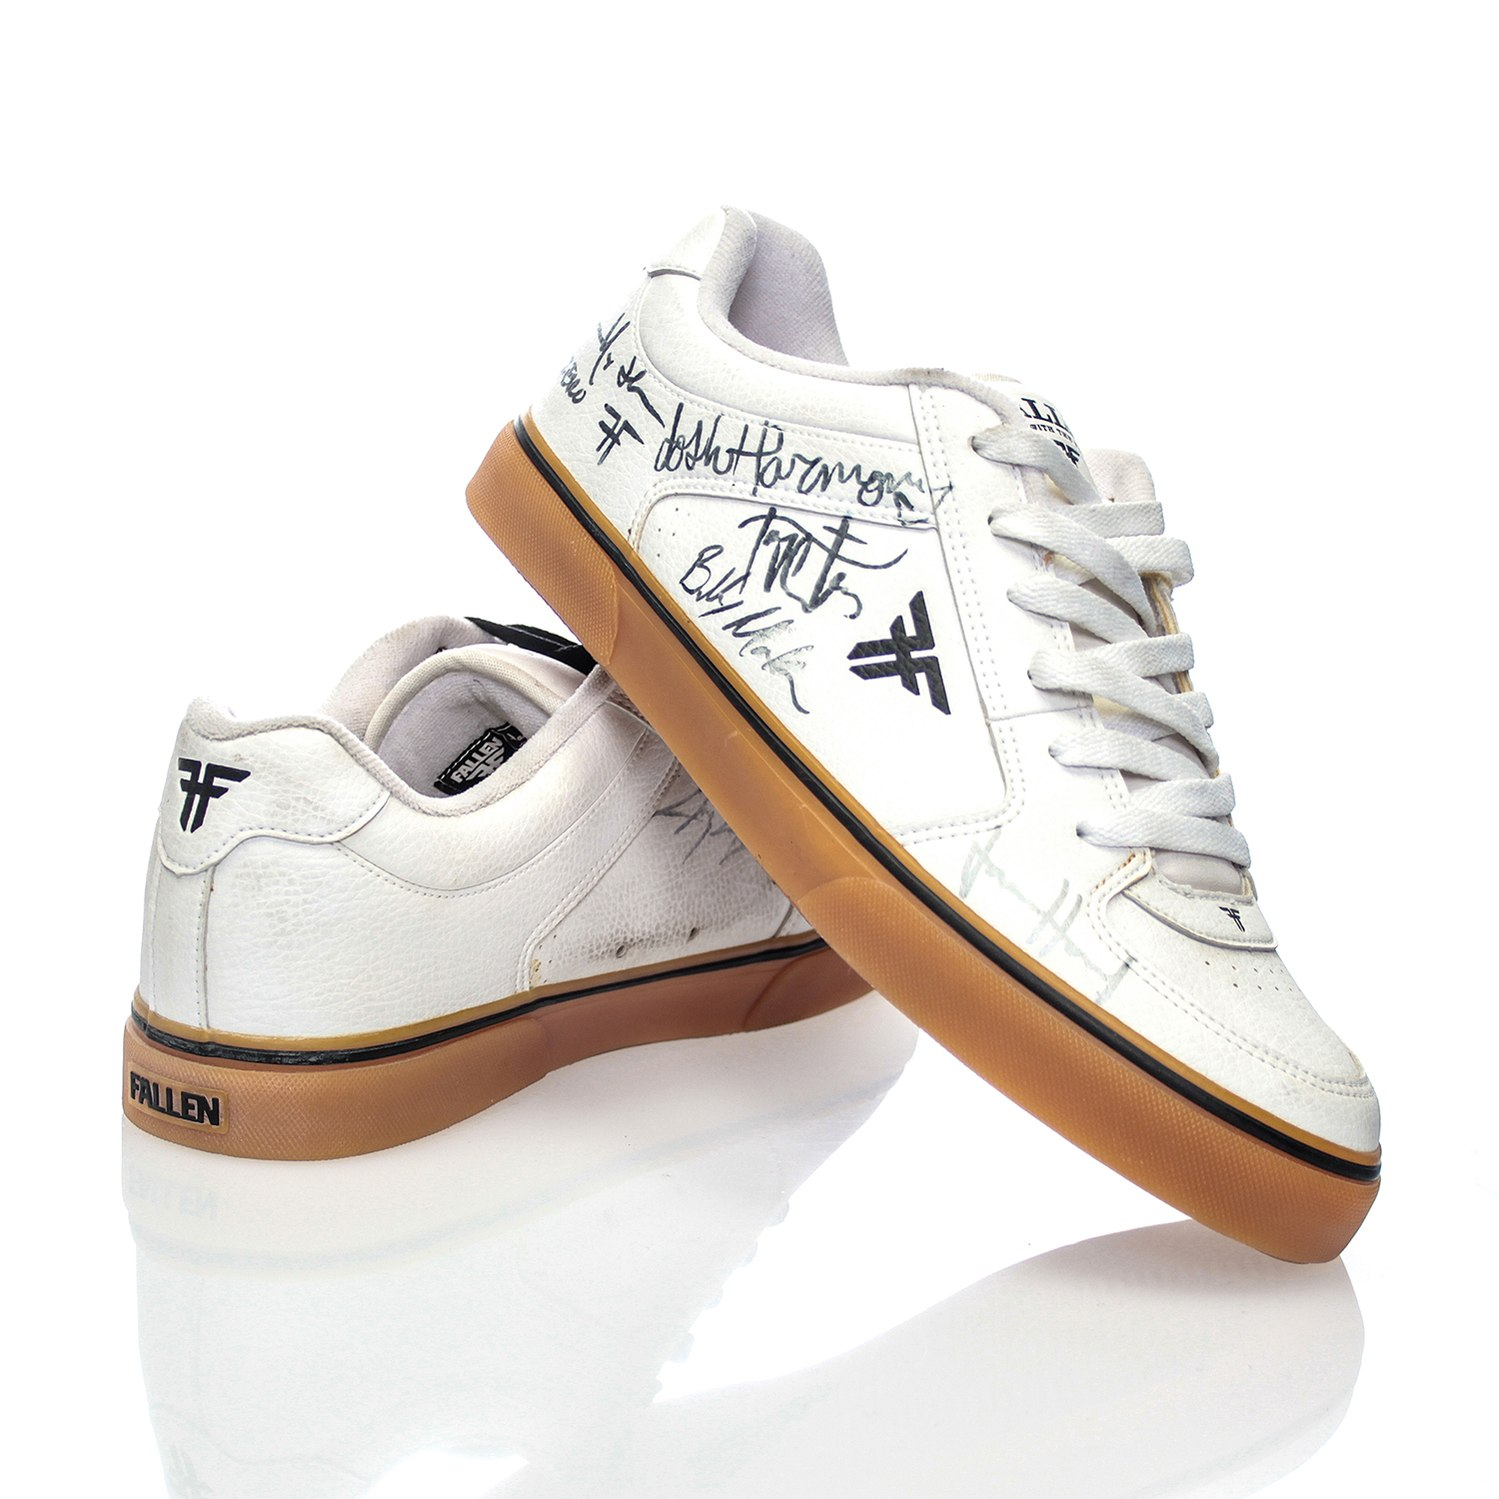 2522e883176e Skate shoe - The complete information and online sale with free shipping.  Order and buy now for the lowest price in the best online store!